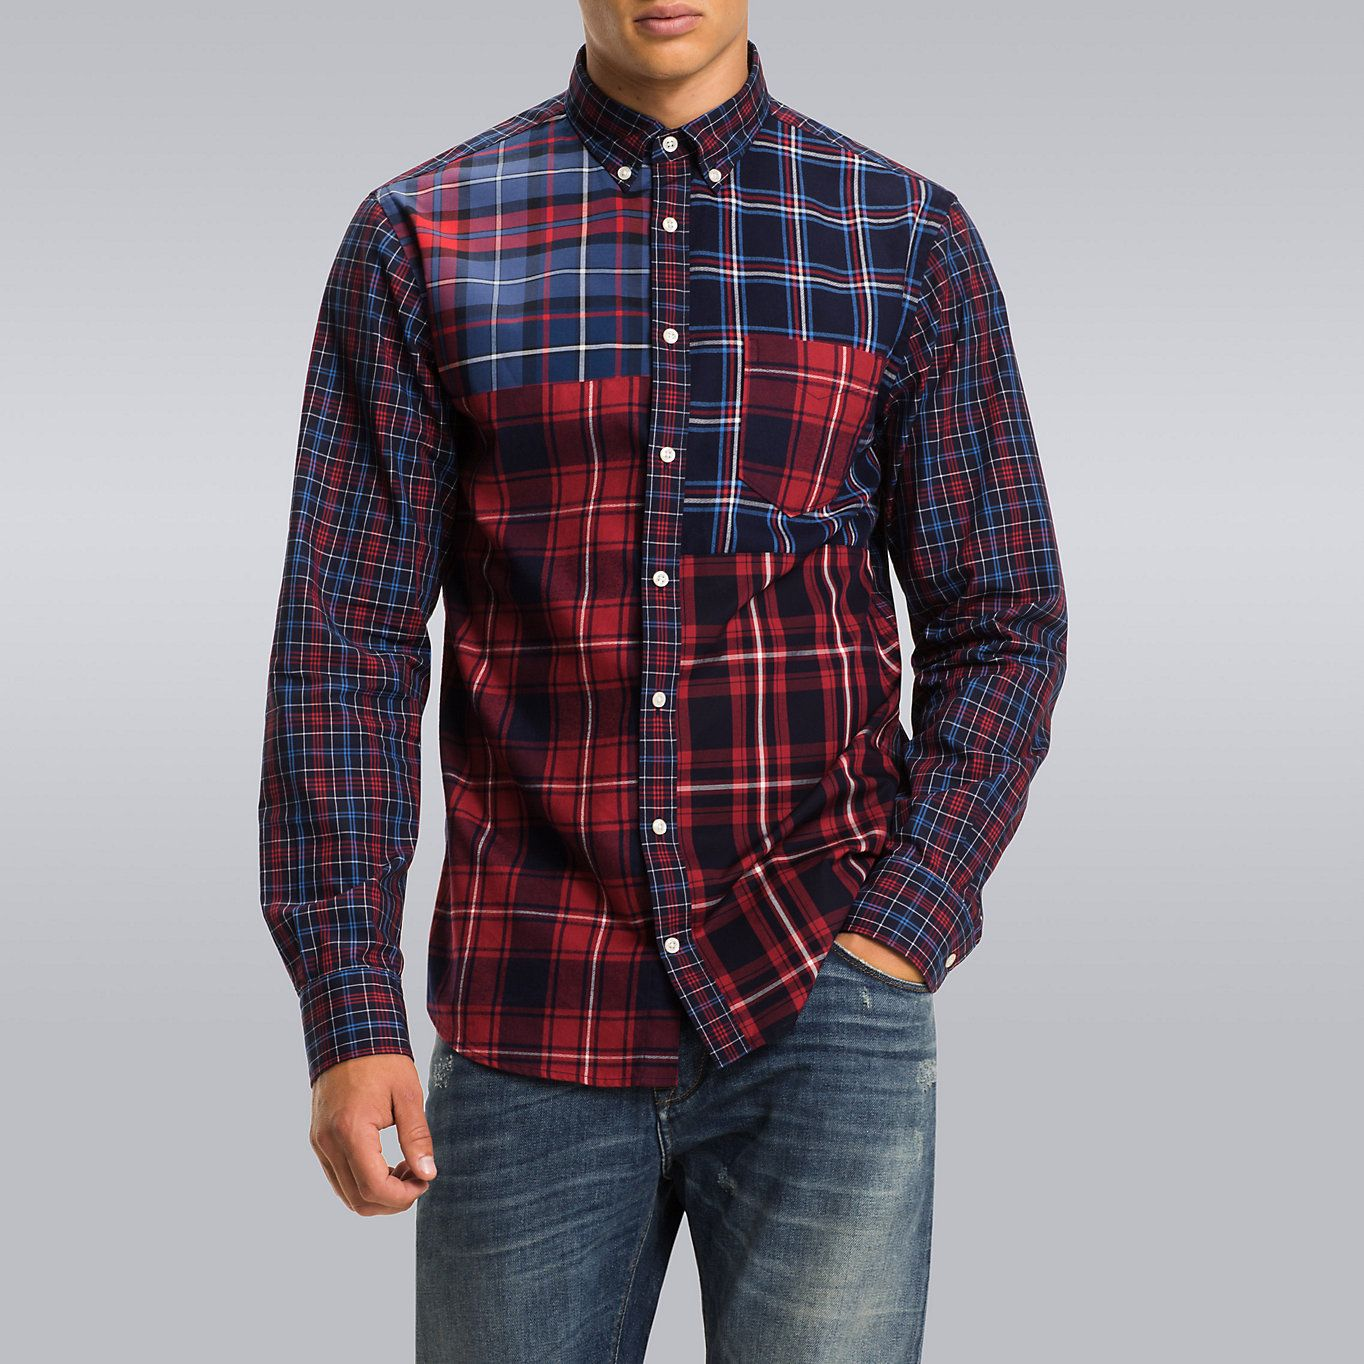 2ae012b4 Image for Fitted Tommy Tartan Patchwork Shirt from TommyUK | shirts ...